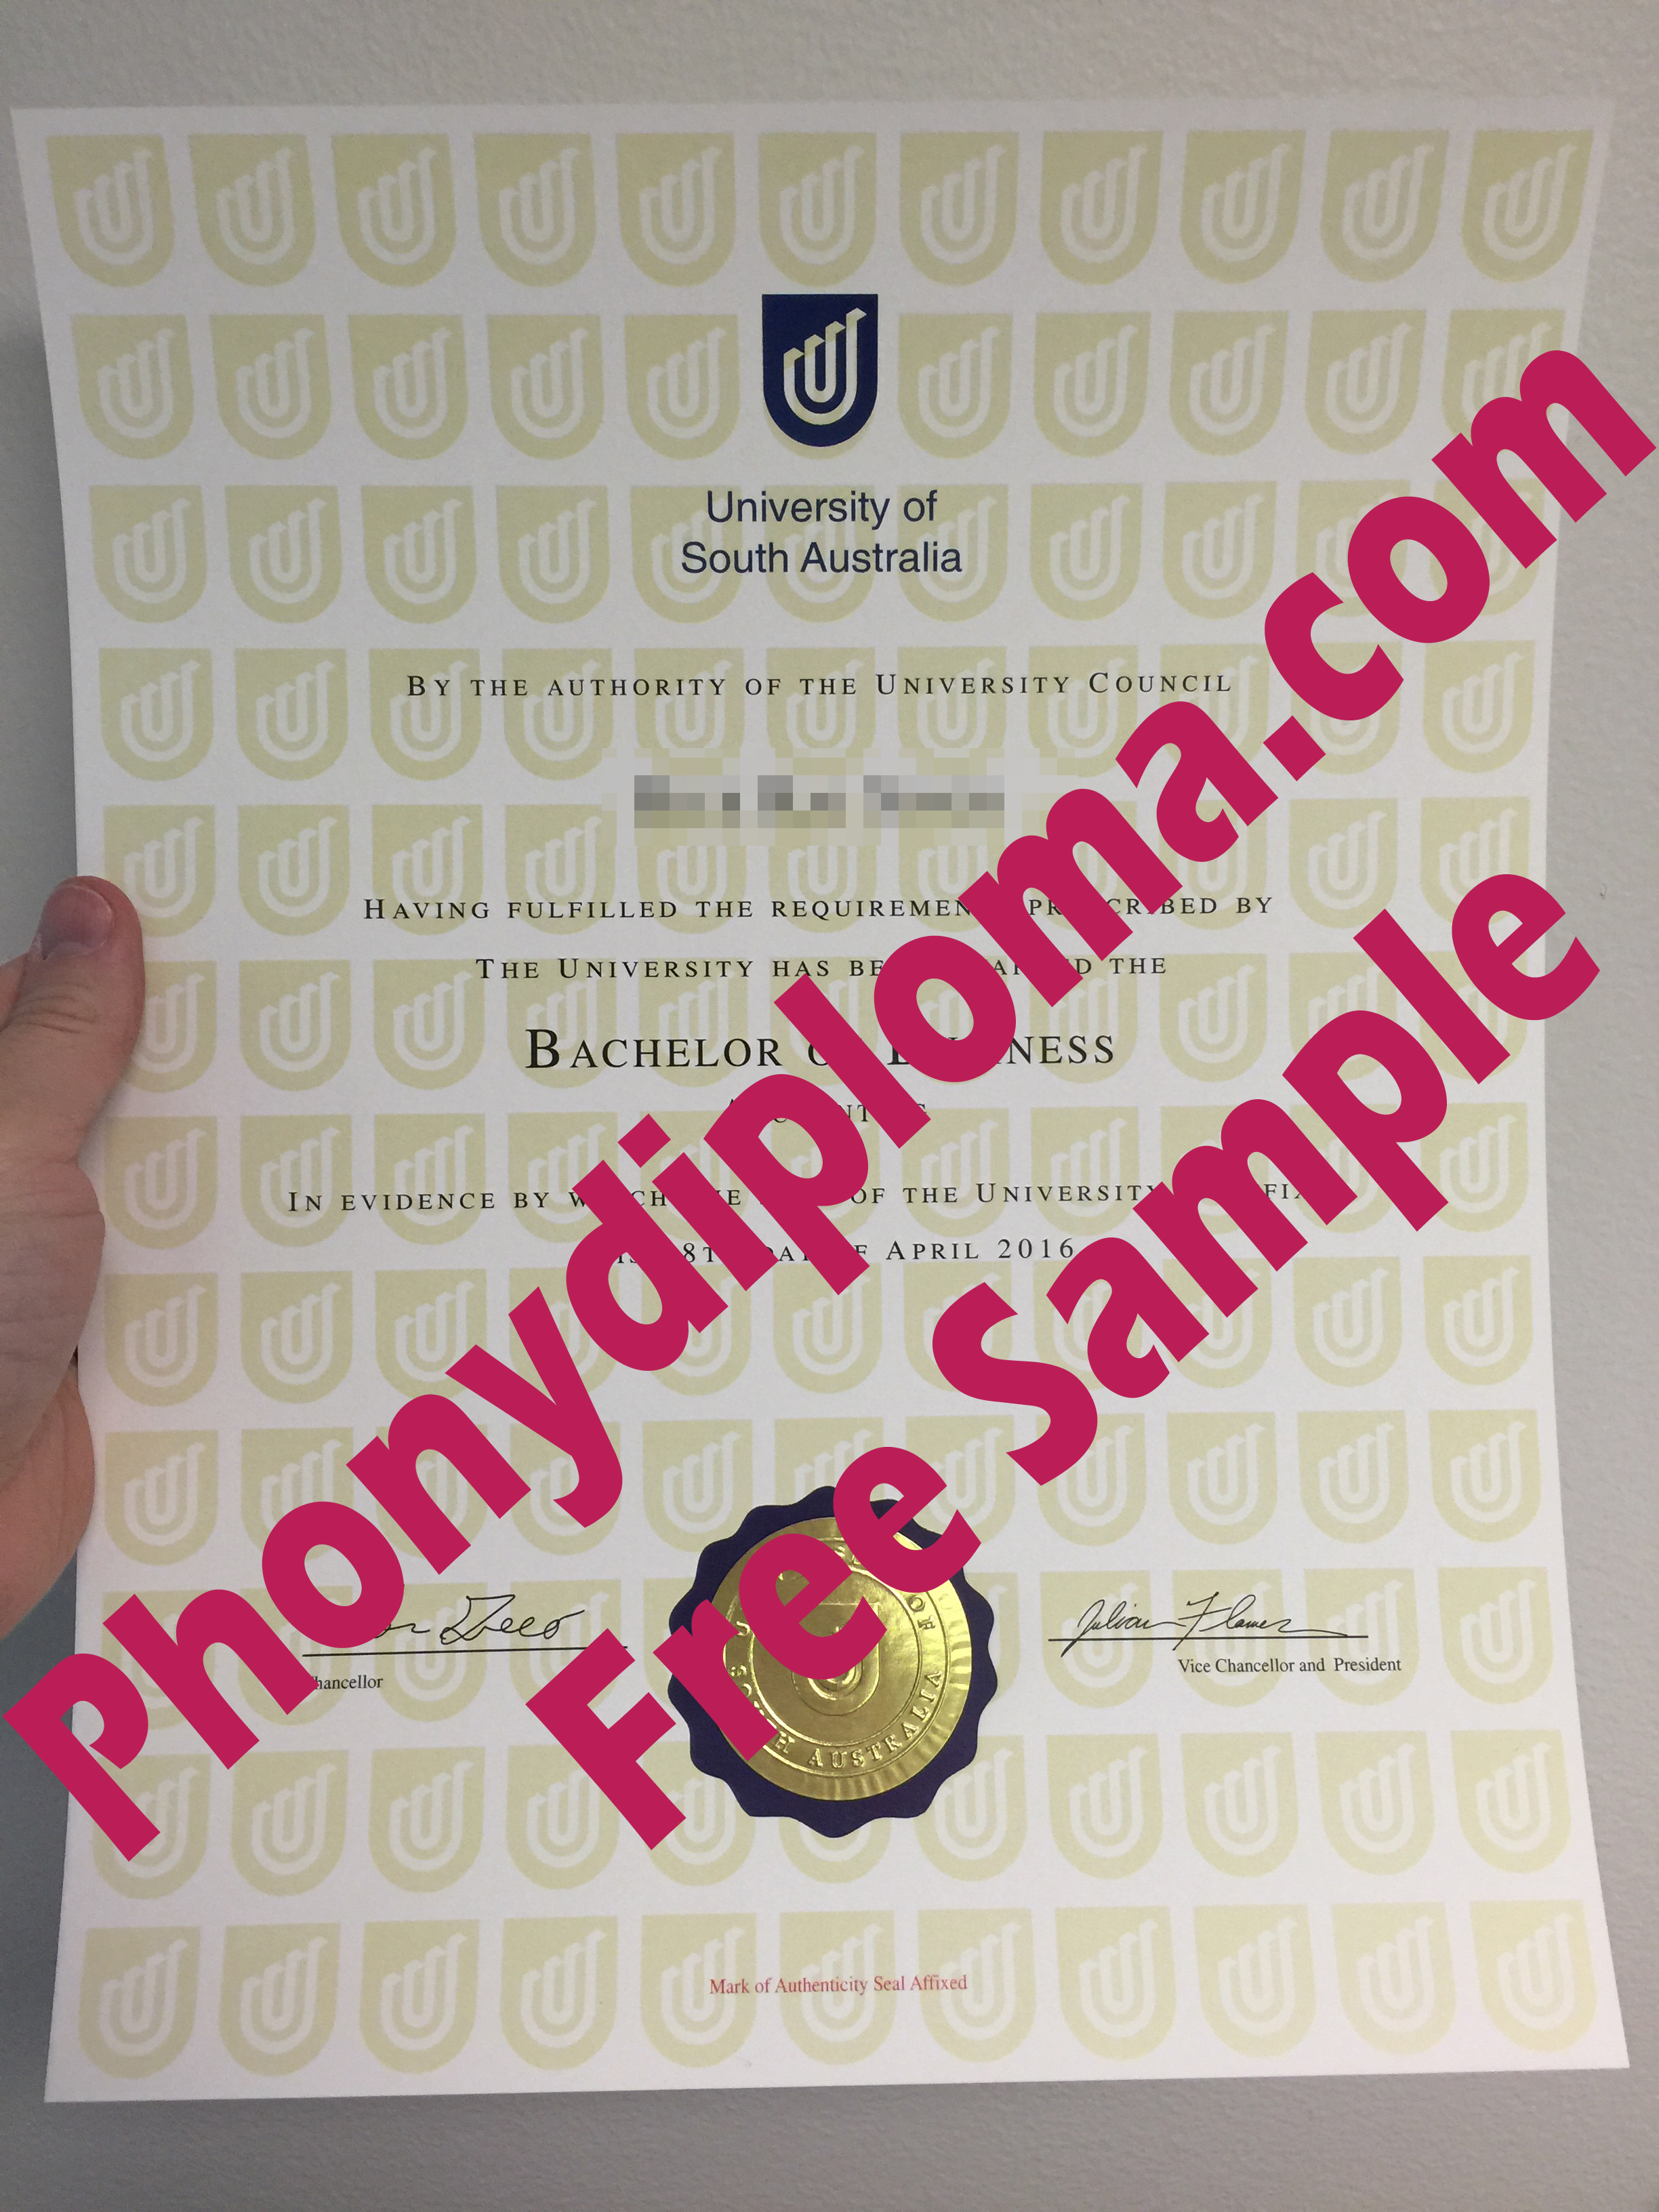 University Of South Australia Free Sample From Phonydiploma (2)